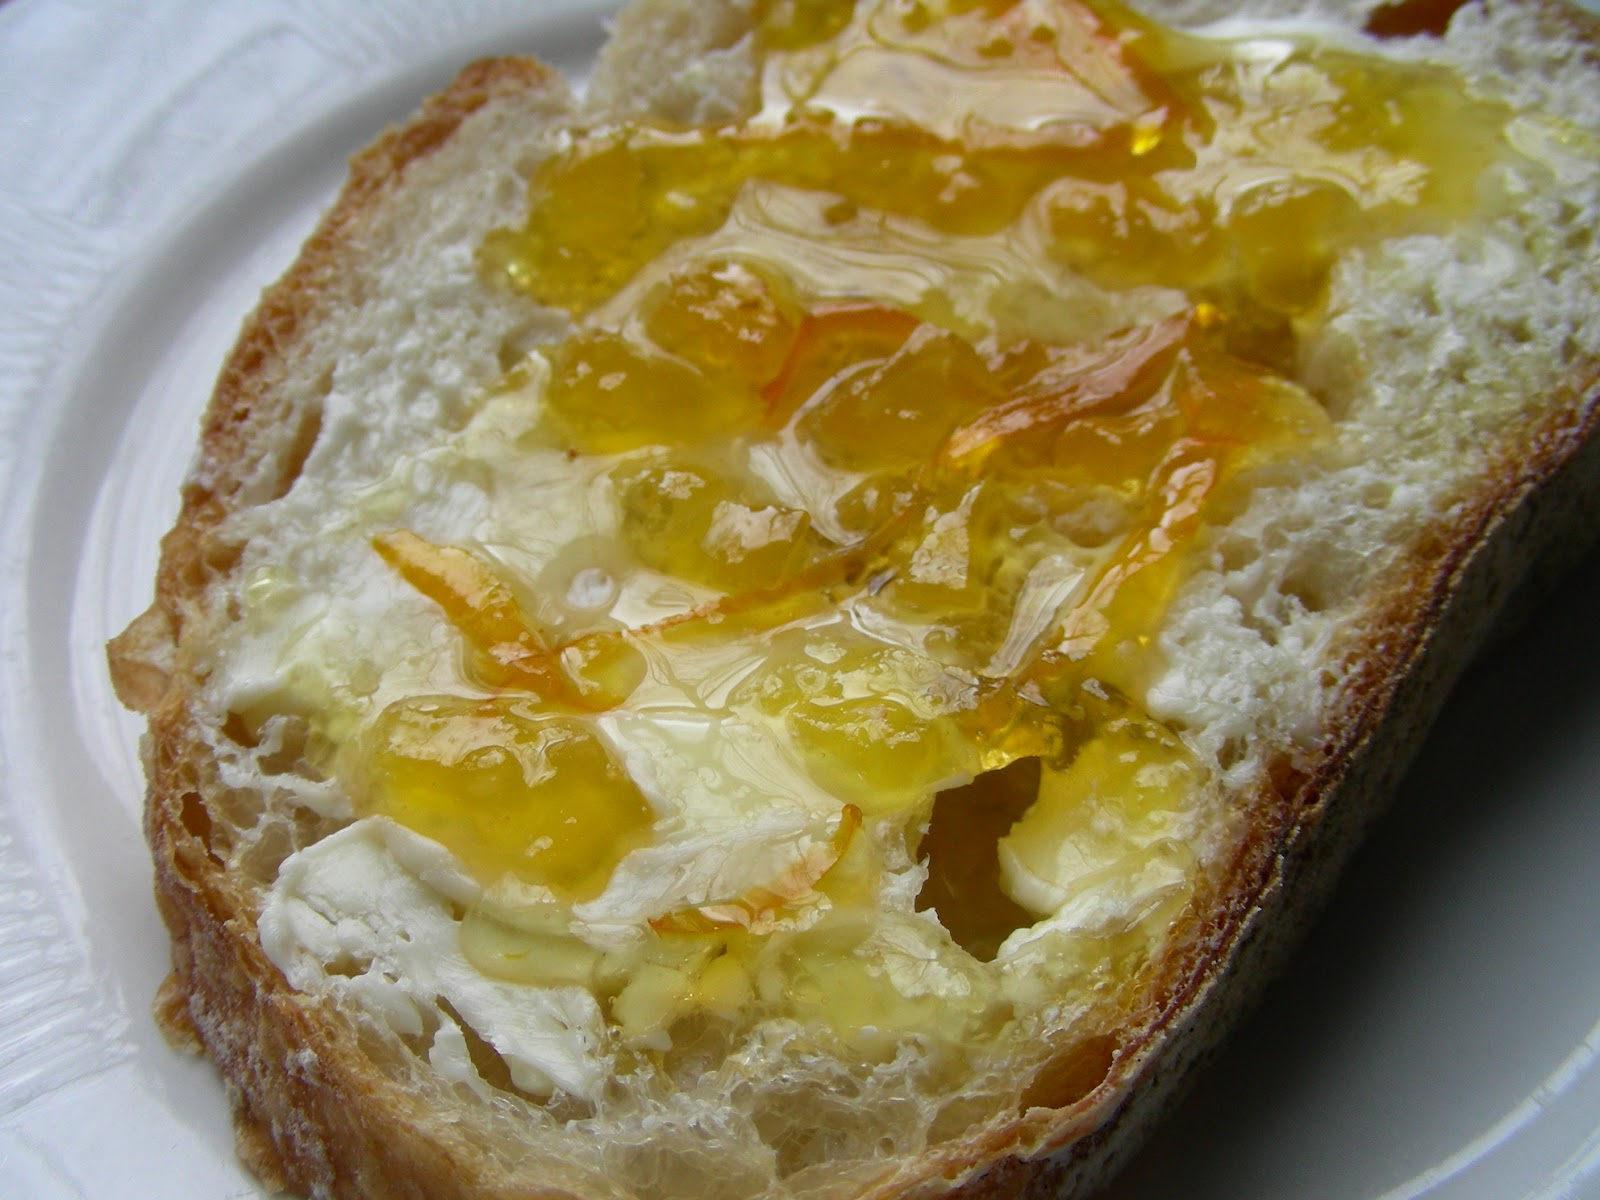 Susan Can Cook: Pineapple and Meyer Lemon Marmalade